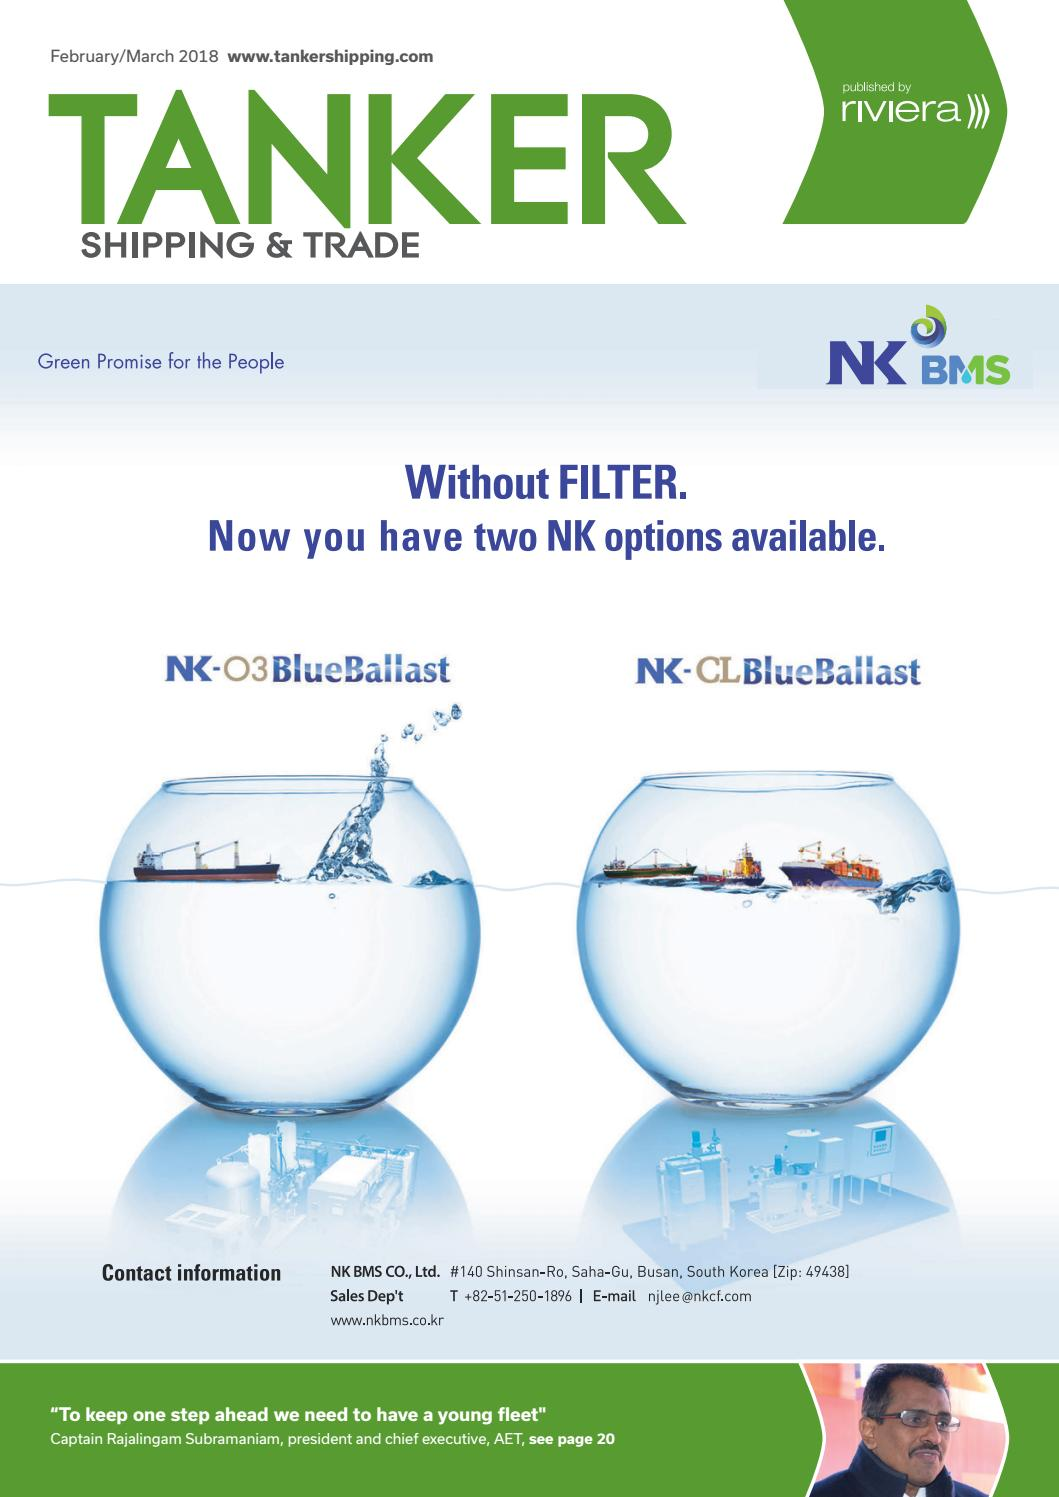 Tanker Shipping & Trade February/March 2018 by